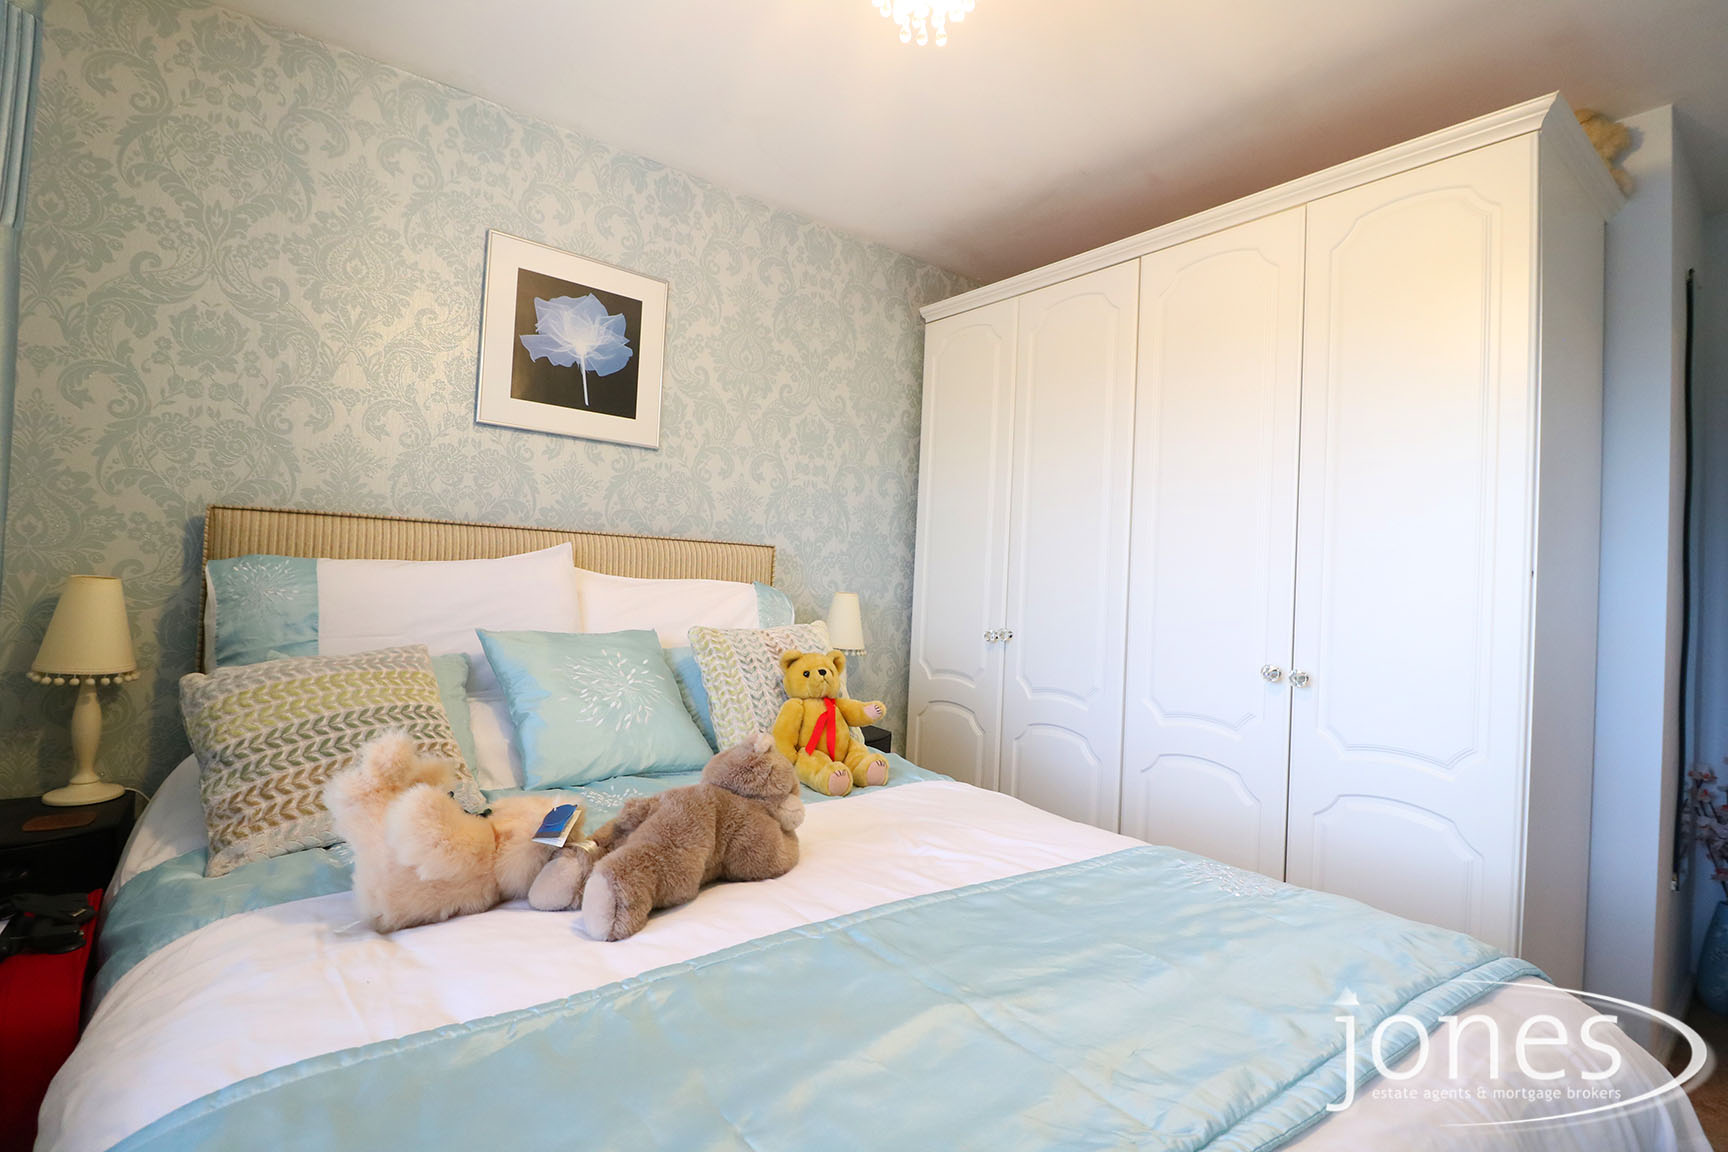 Home for Sale Let - Photo 09 West End Way, Stockton on Tees, TS18 3UA